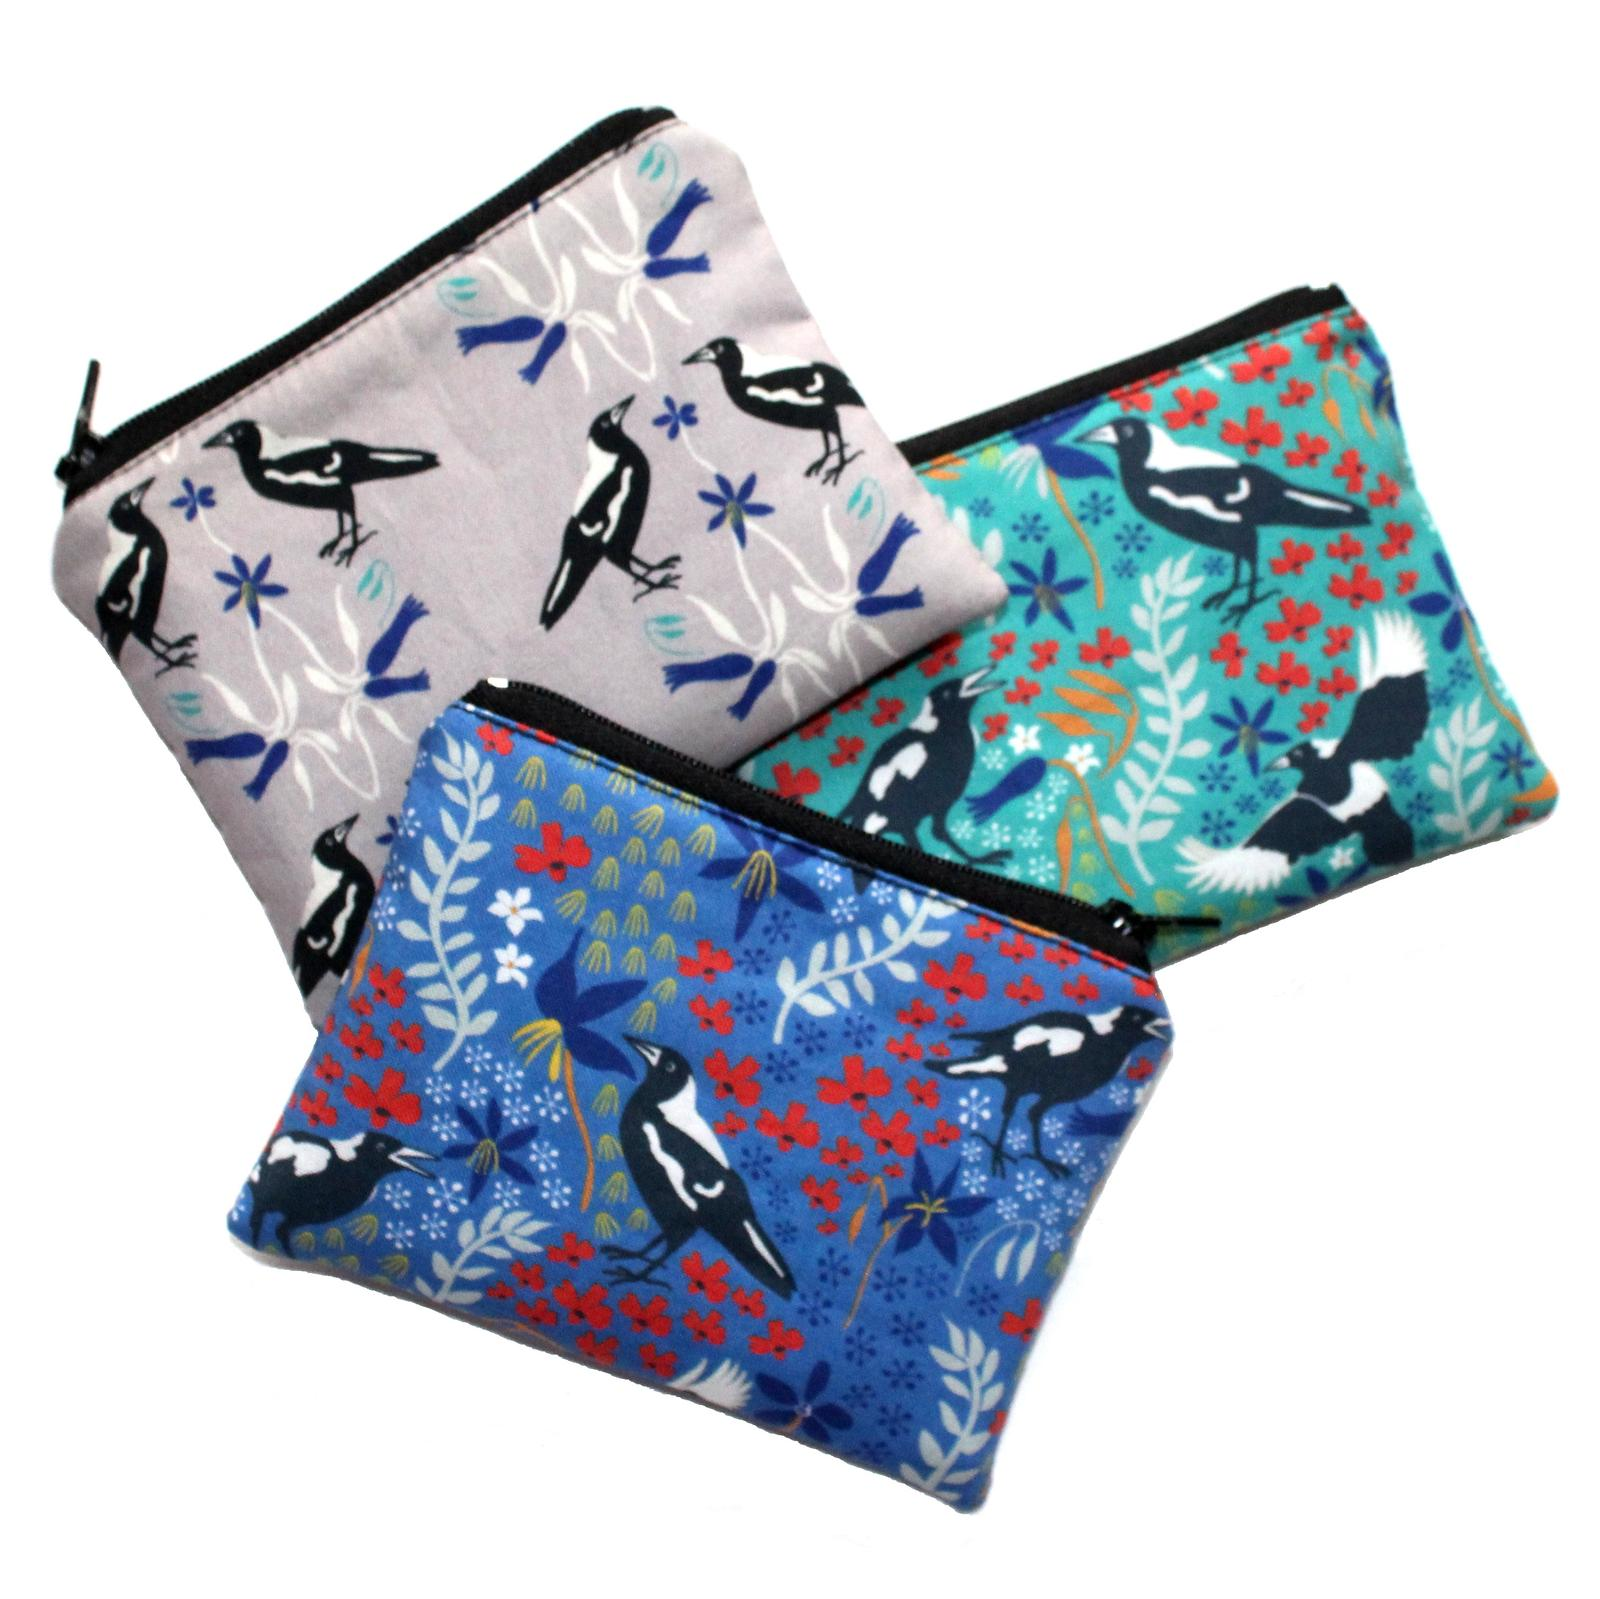 Coin Purses in Australiana fabrics